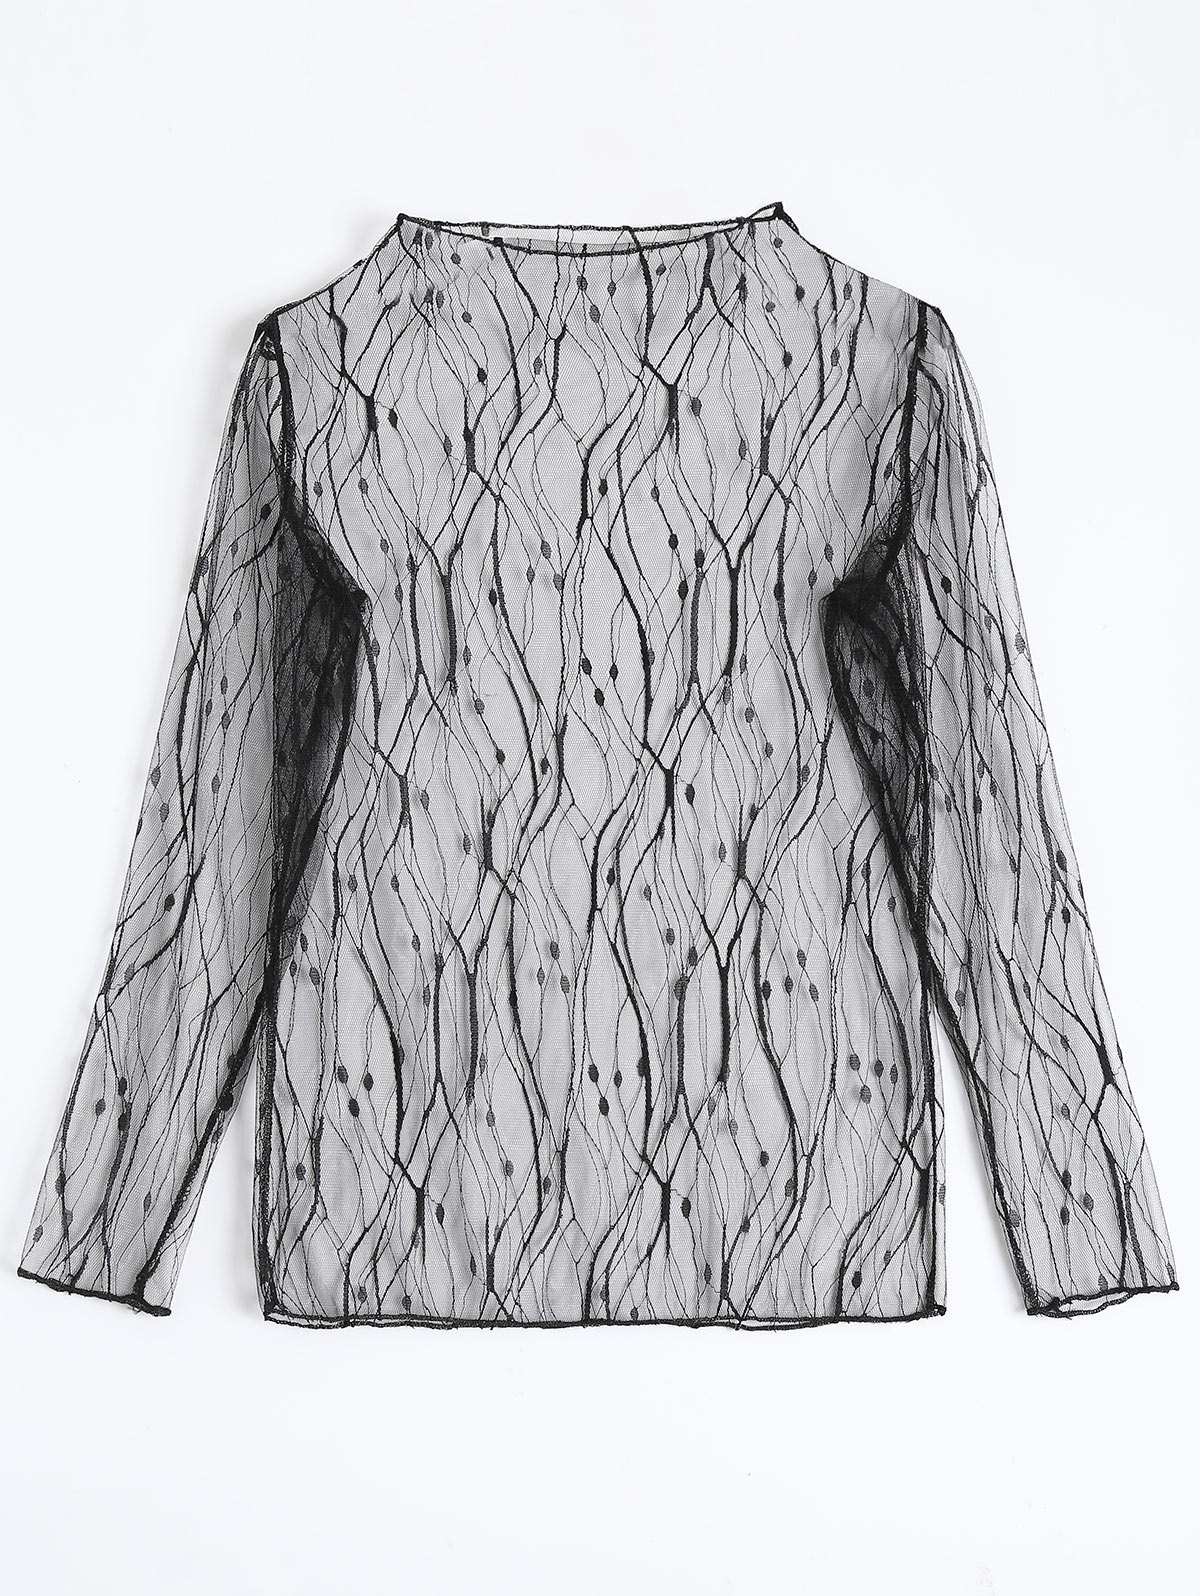 Sale Lace Fishnet Sheer Long Sleeve Top